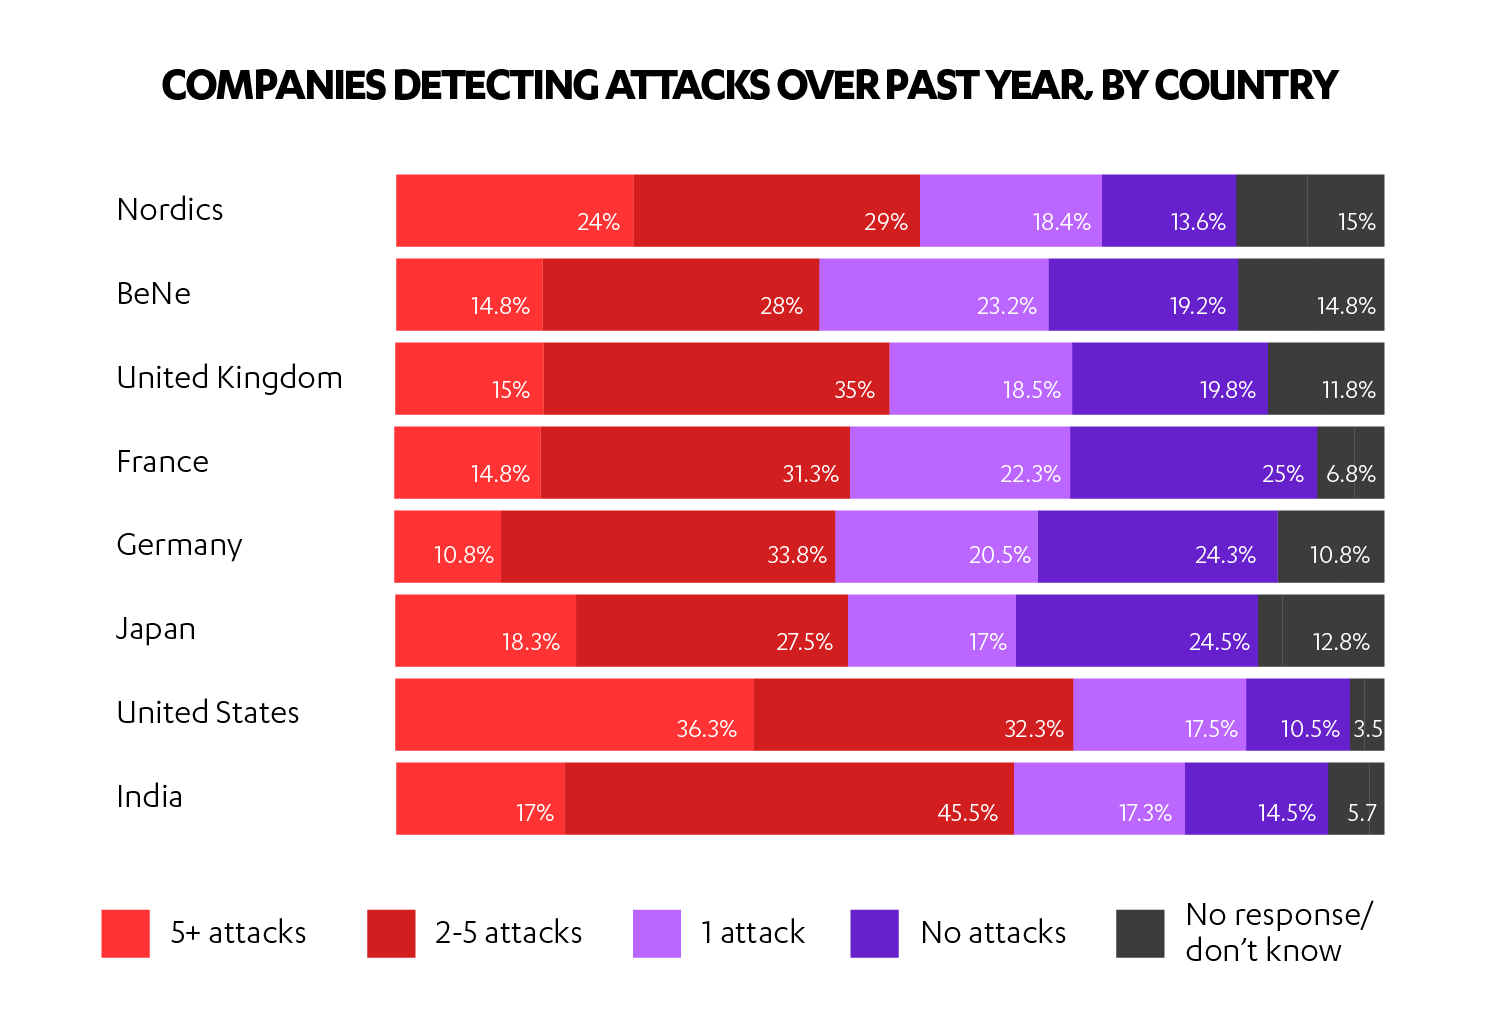 Companies detecting attacks, by country